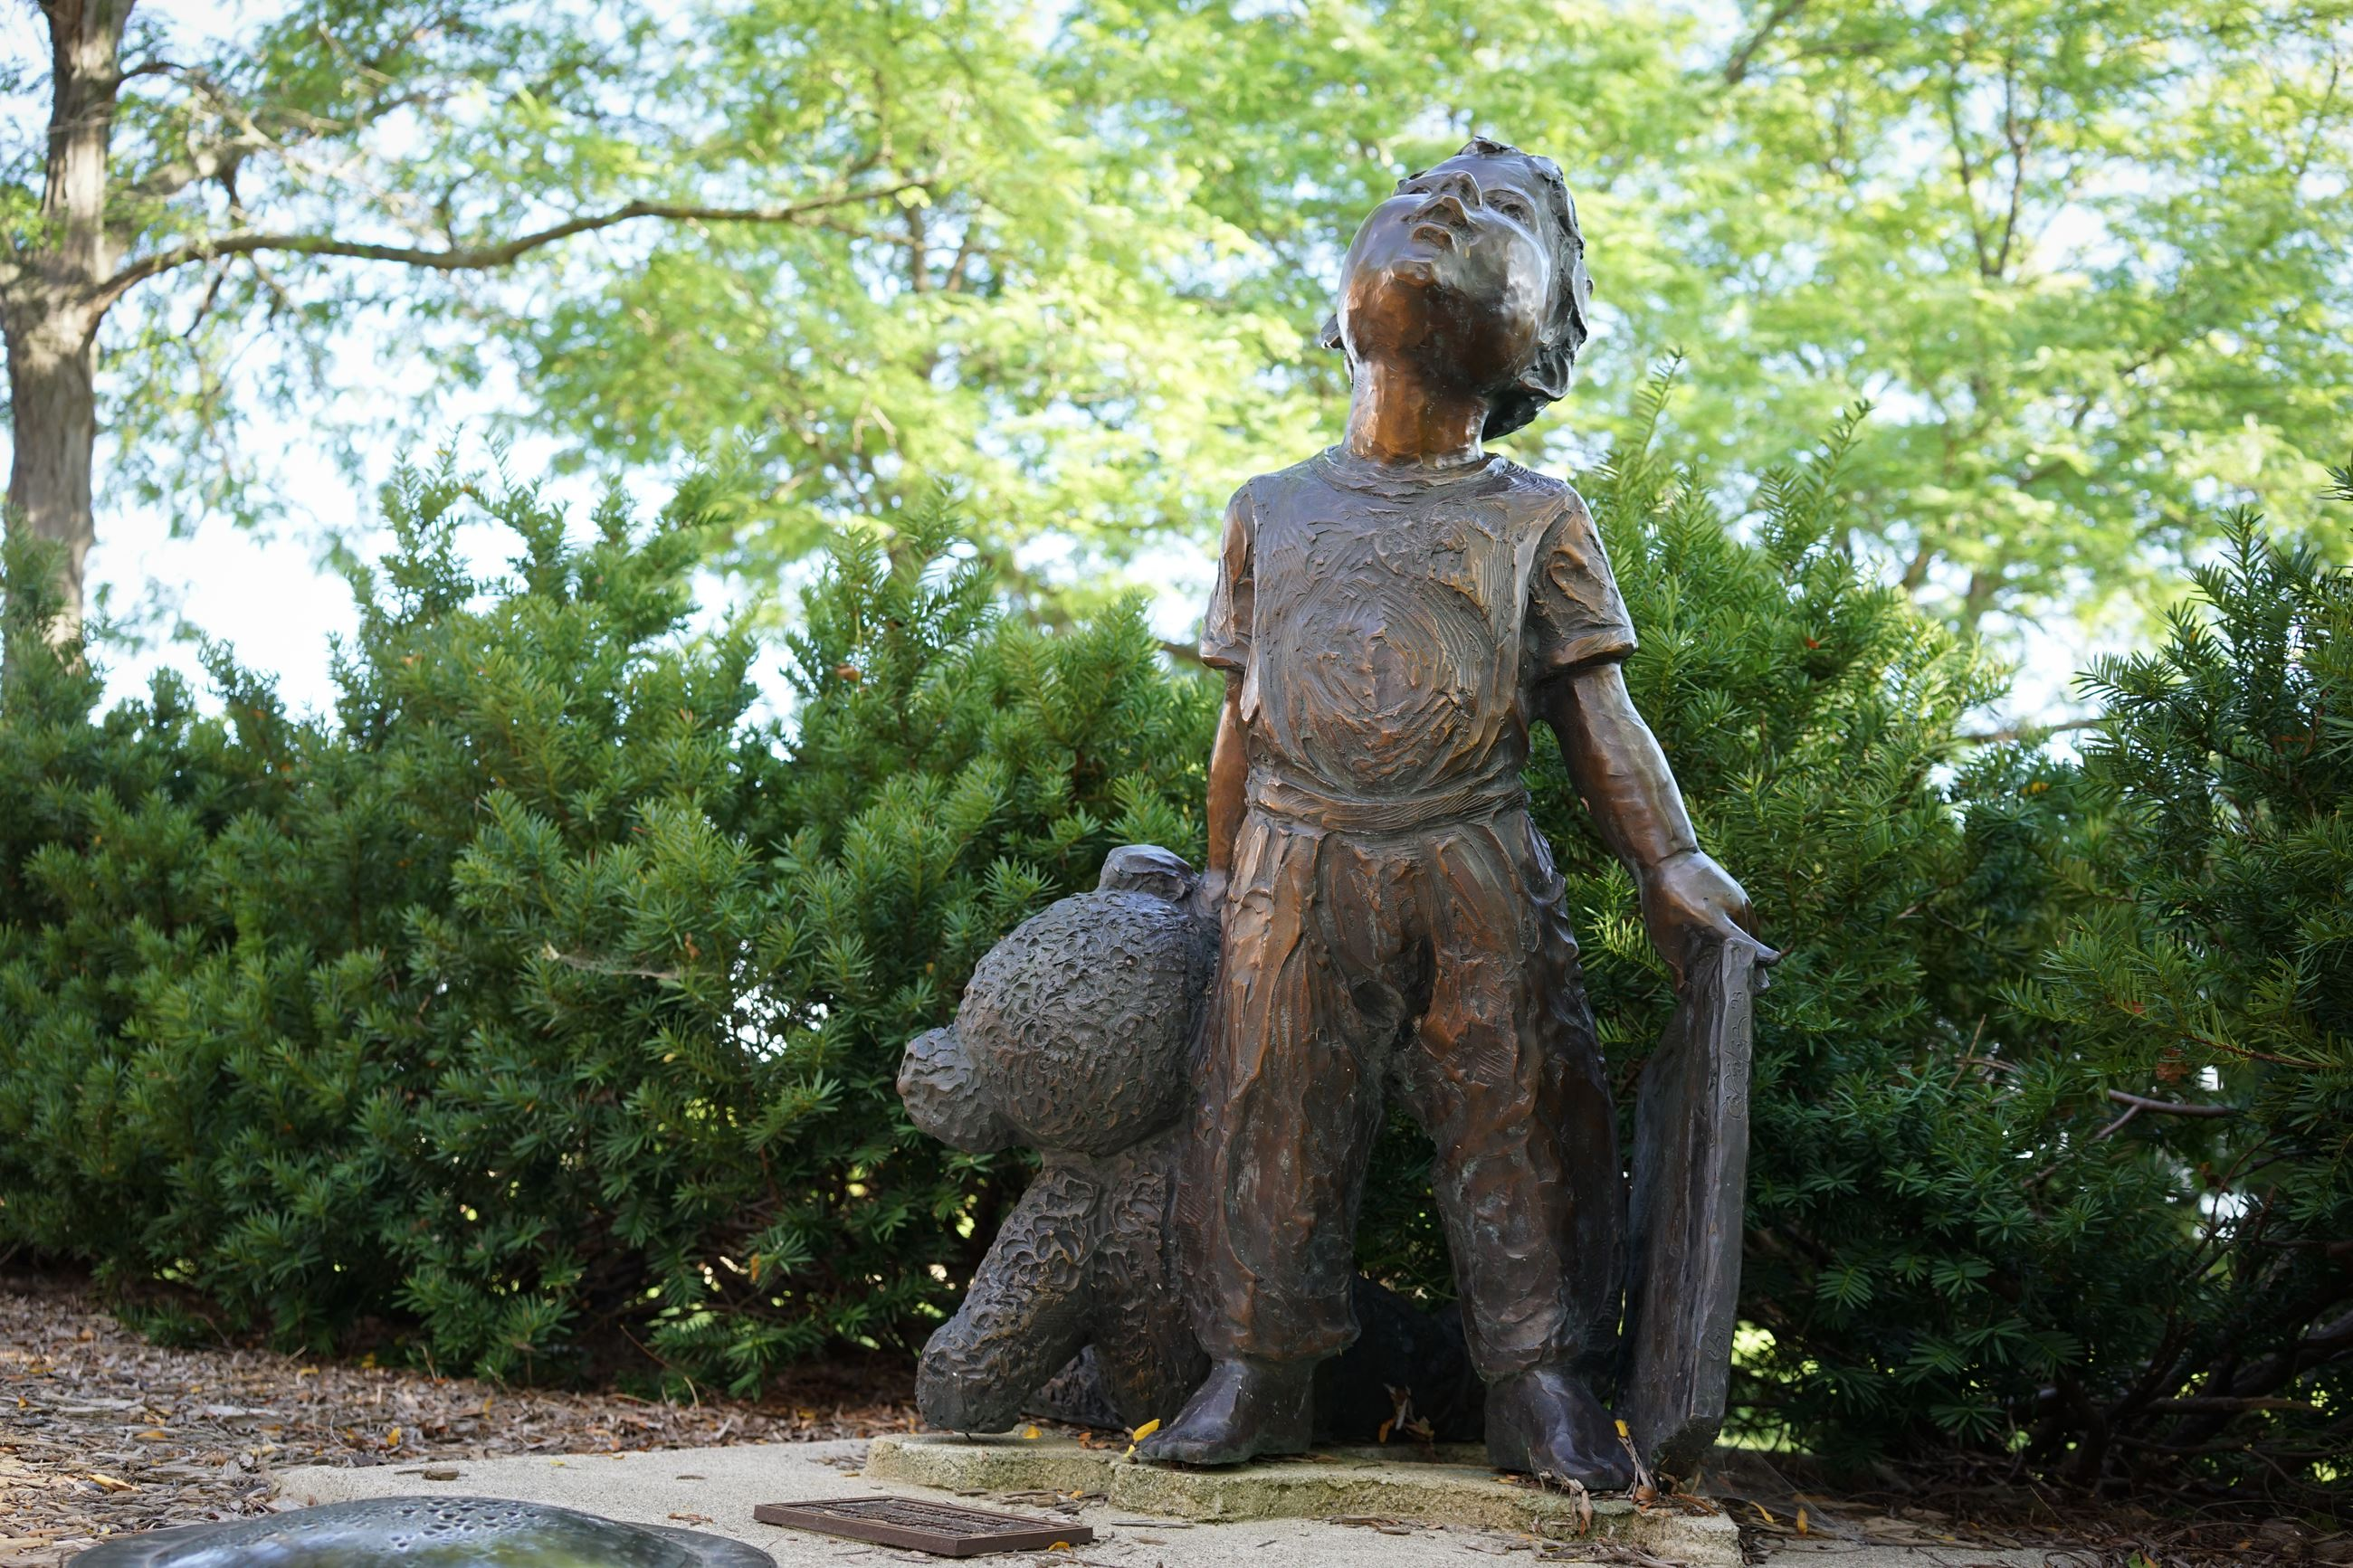 Image of a statue of a boy and a bear